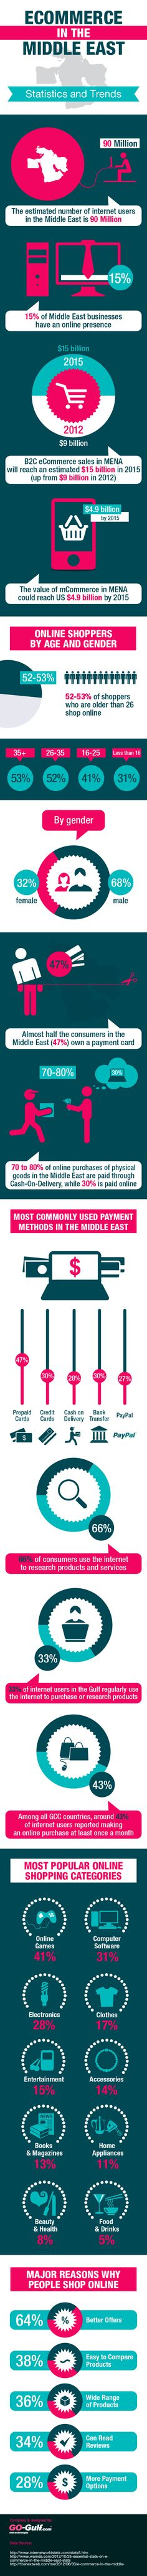 Middle East e-Commerce Market : Predictions are of the most optimistic regarding the growth of e-Commerce in the Middle East. It is expected that by 2015 the B2C e-Commerce market will turnover $15 billion resulting in about 70% increase from 2012. Find out more insights about online shopping in MENA.  > http://infographicsmania.com/middle-east-e-commerce-market/